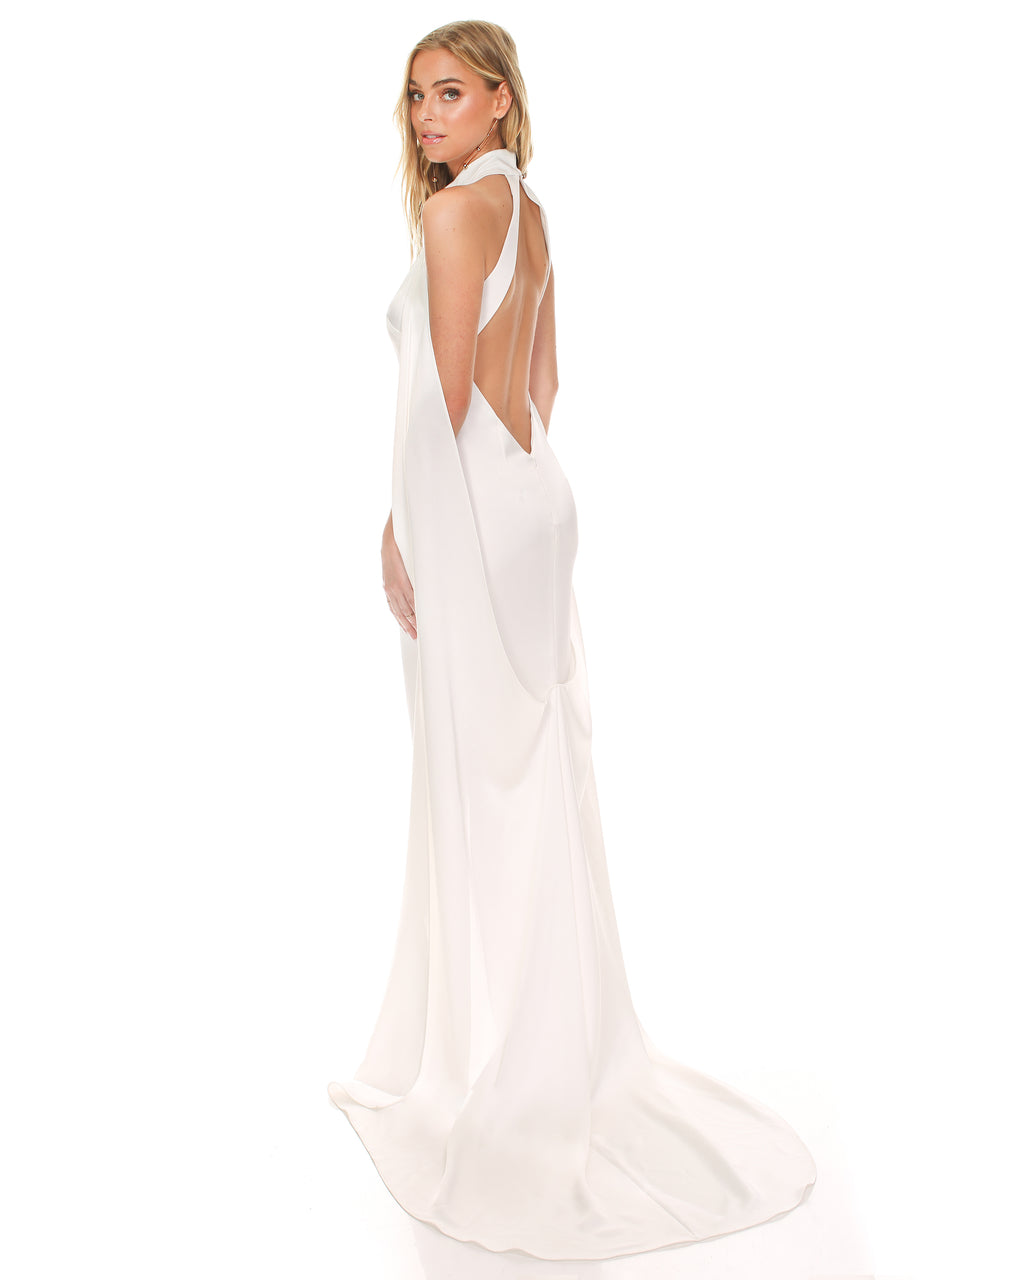 Model wearing Landmark bridal gown in Ivory by Noel & Jean by Katie May